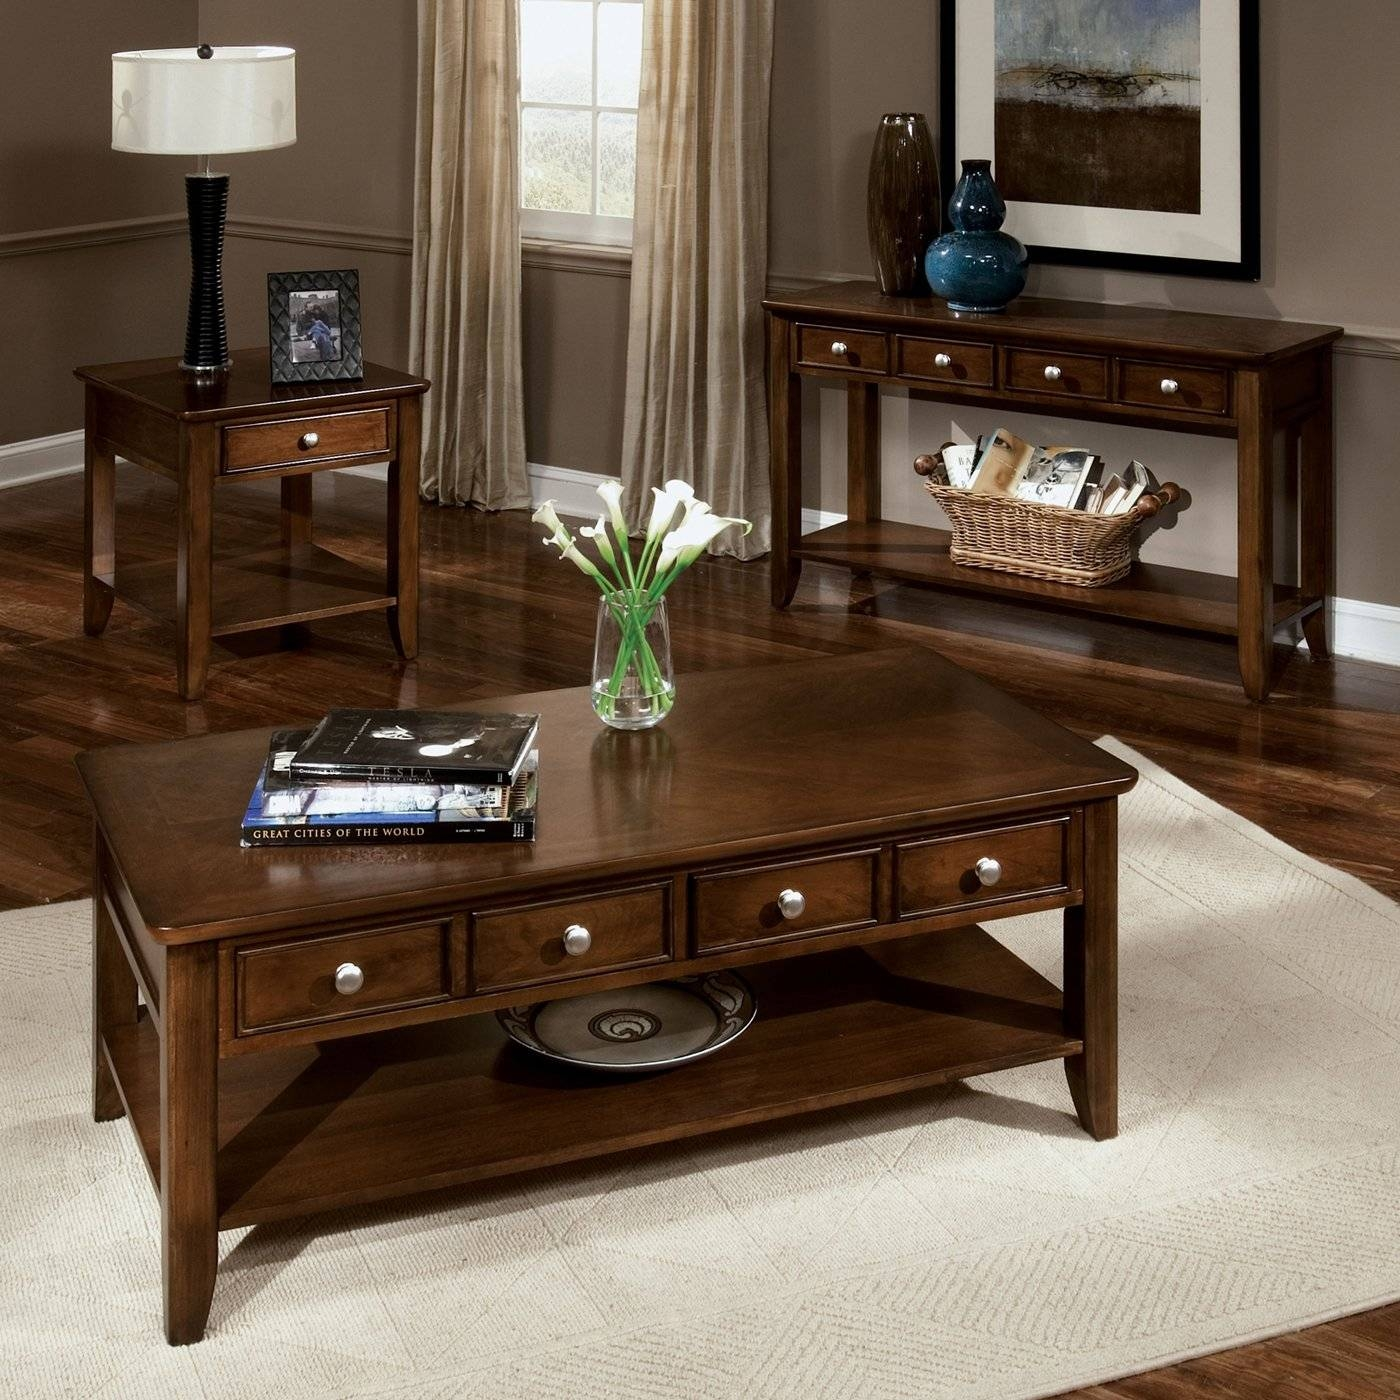 Contemporary Wood Coffee Table Coffee Tables And Side Tables – 4 Pertaining To Coffee Tables And Side Table Sets (View 14 of 30)